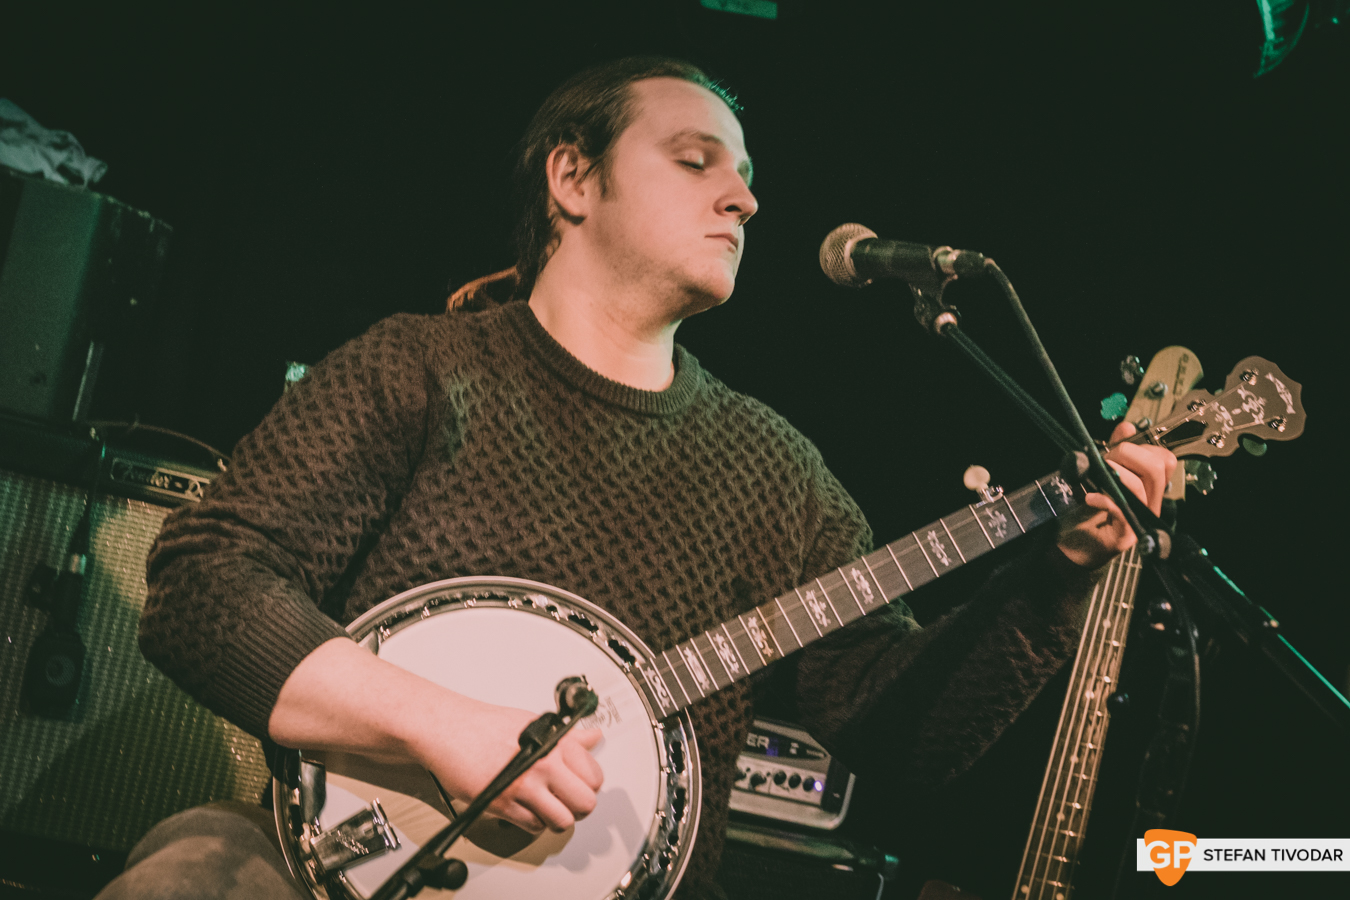 Alfi Whelans Ones to Watch Winter 2019 Day Whelans Ones to Watch Winter 2019 Day 51